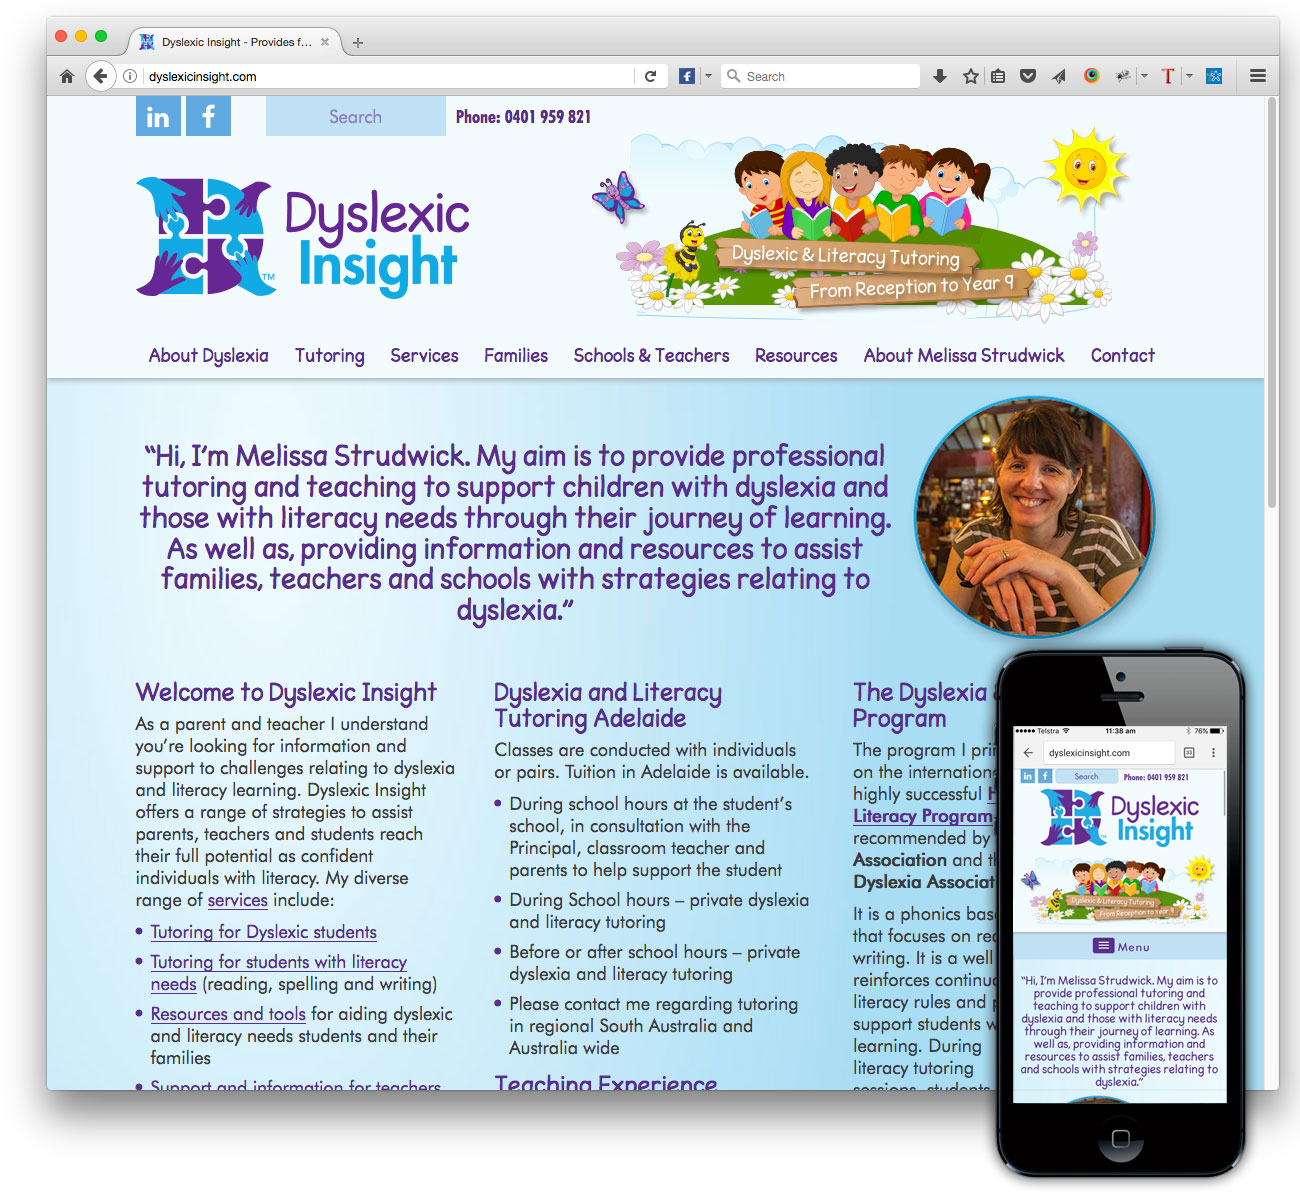 Dyslexic Insight website